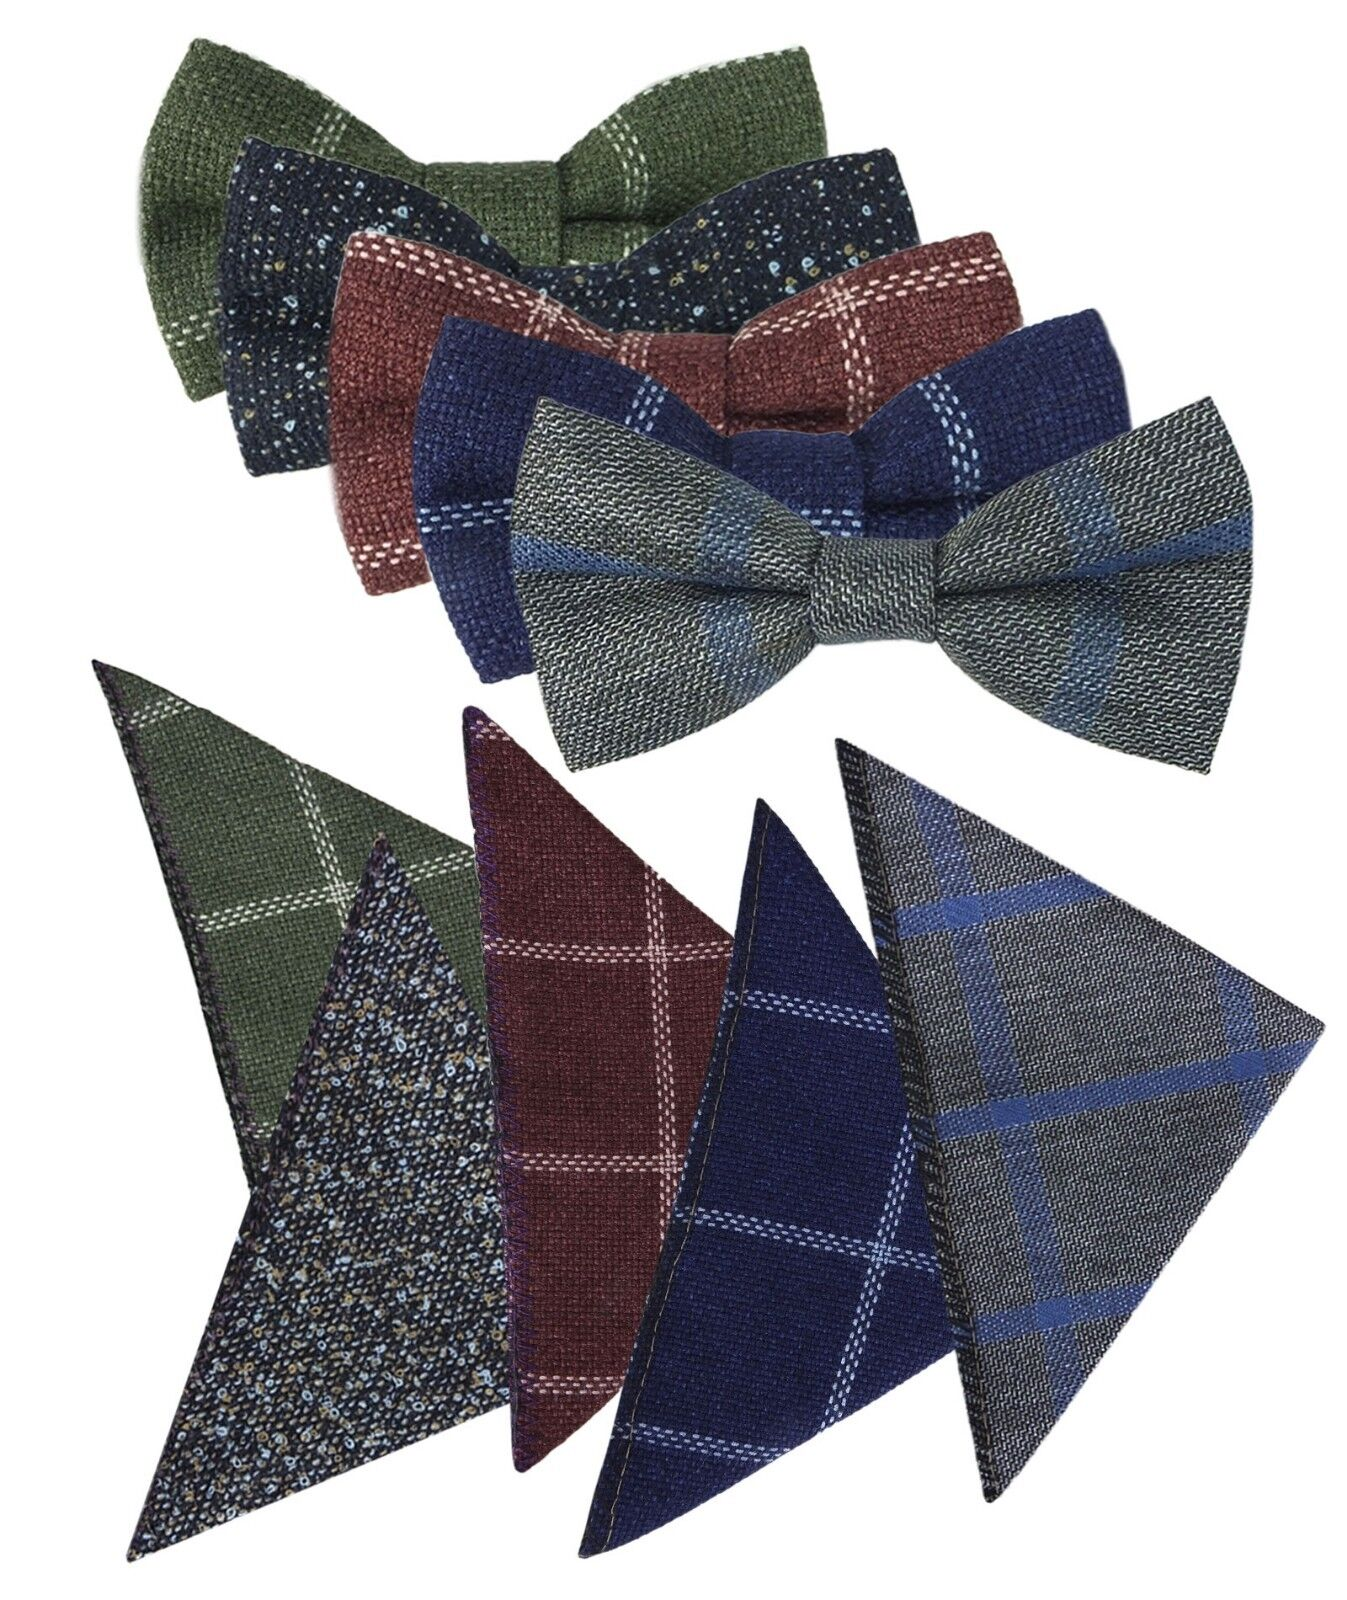 b9cafe8753bf9 Kid Children Boys Check Plaid Tweed Dickie Bow Tie and Pocket Square Hanky  Set. >